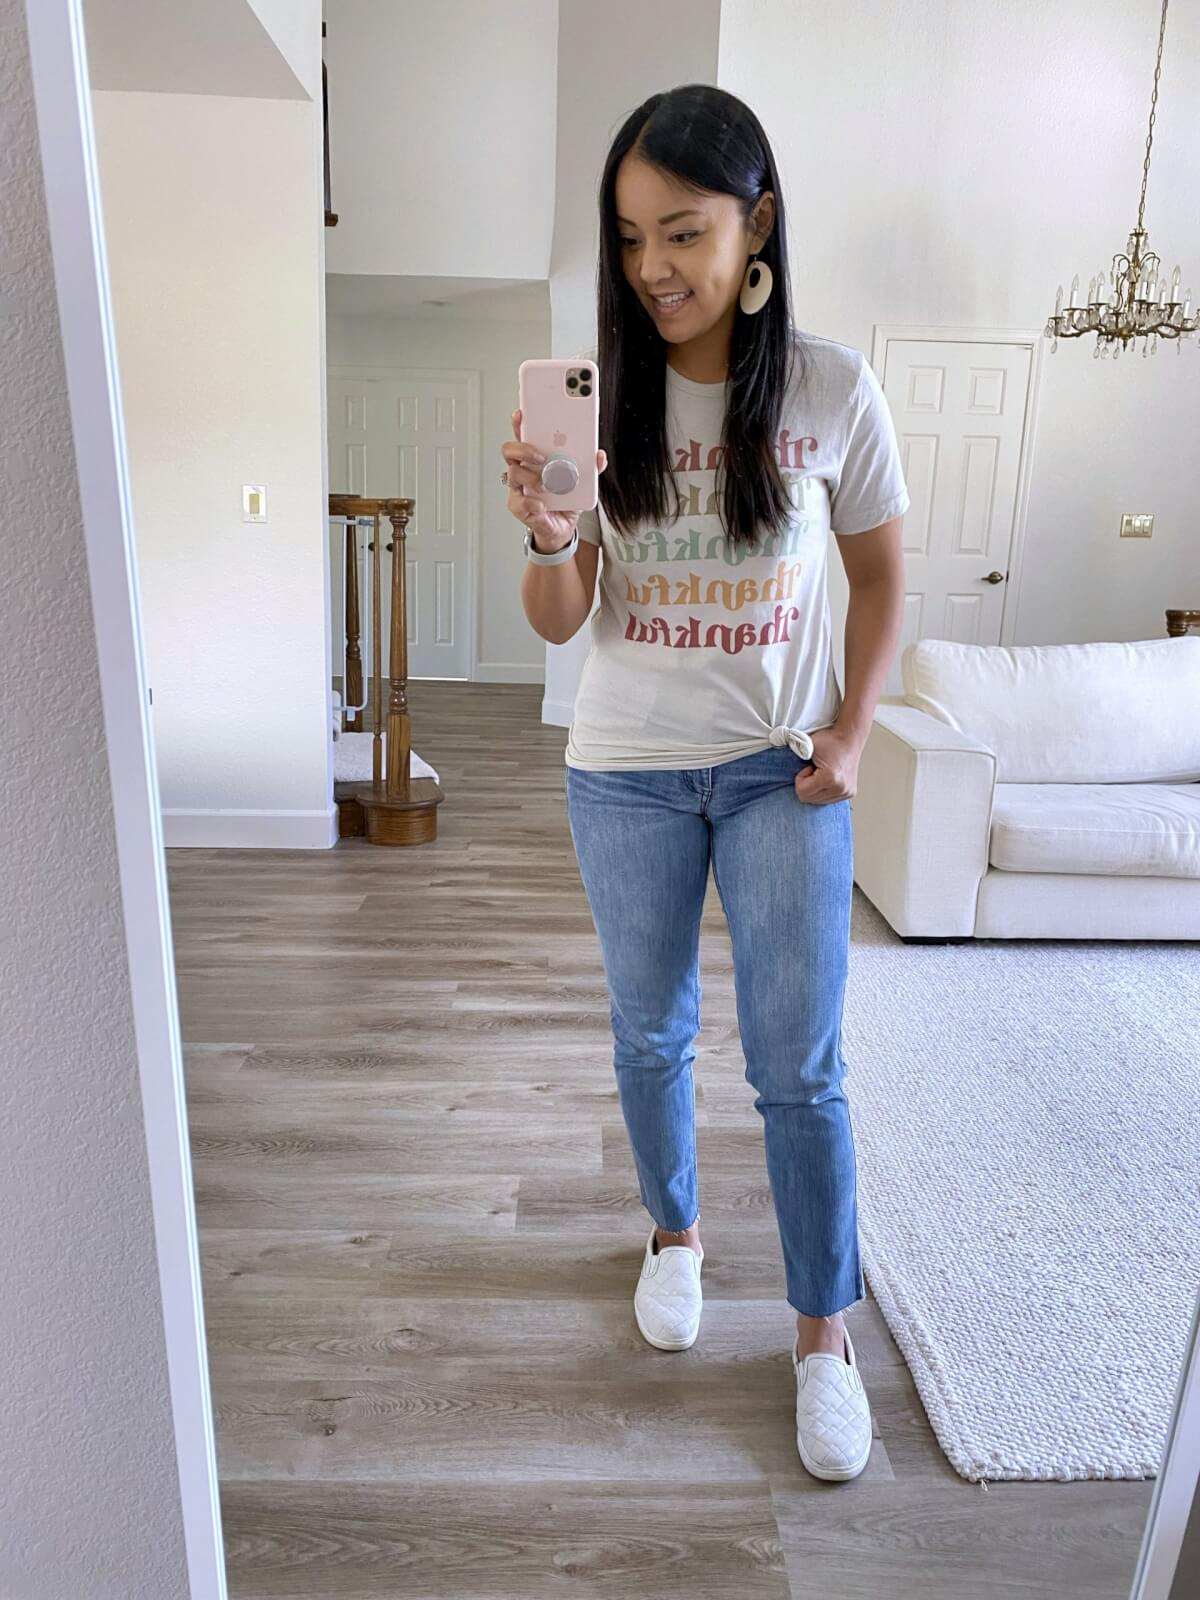 Casual Outfit Early Fall: thankful t-shirt + light straight leg jeans + white earrings + white slip-on sneakers